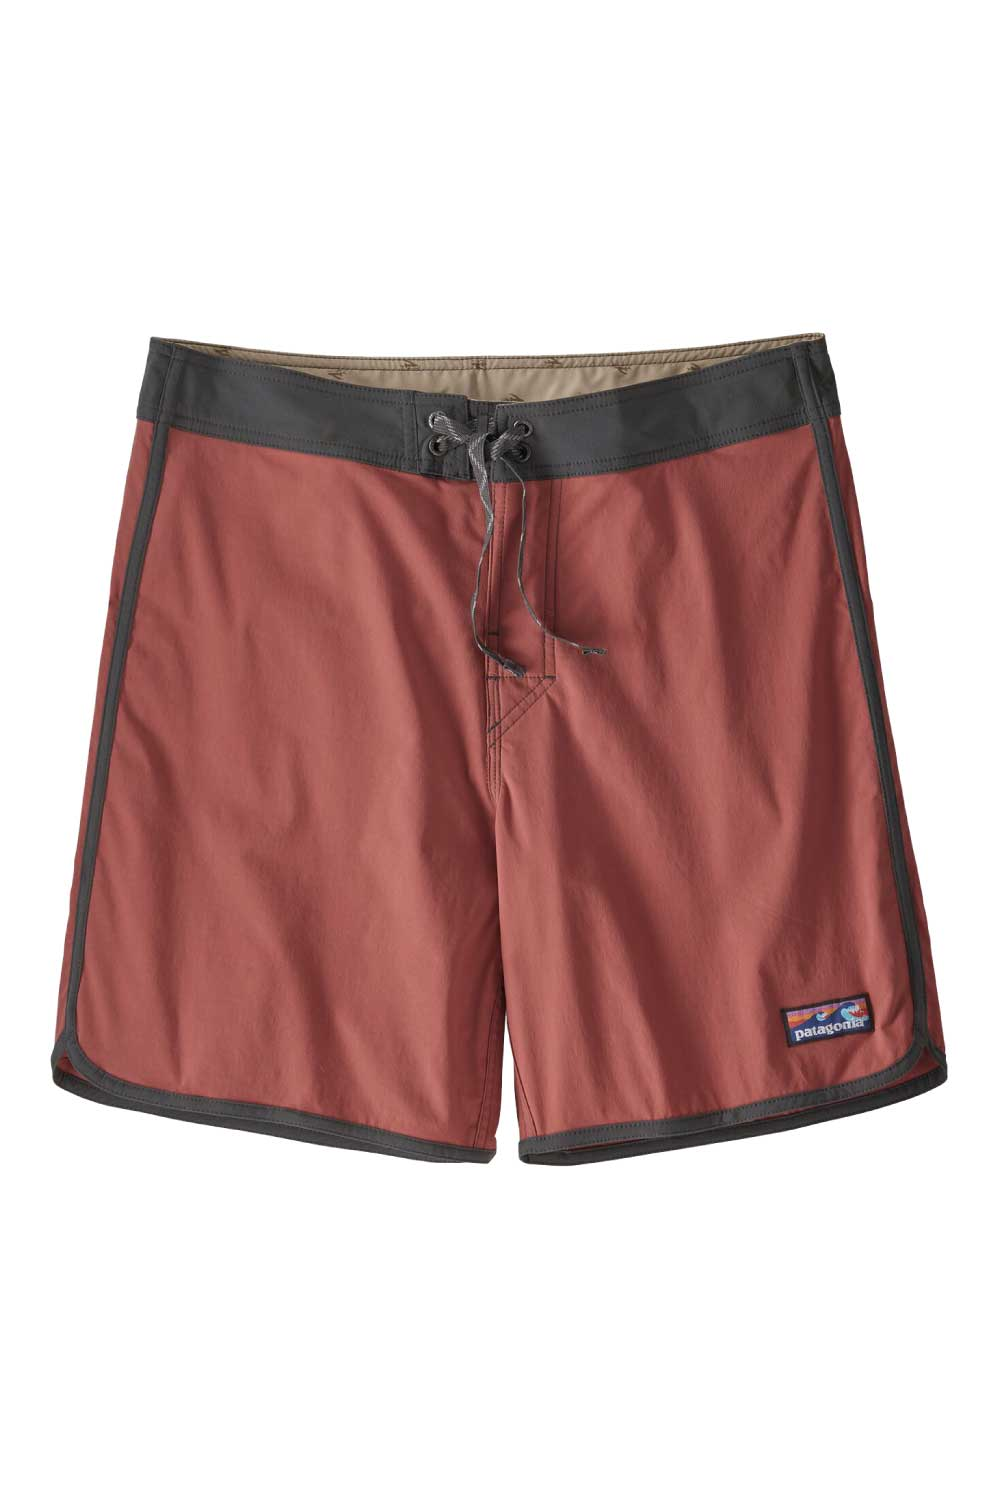 Patagonia Men's Scallop Hem Stretch Wavefarer® Boardshorts 18""